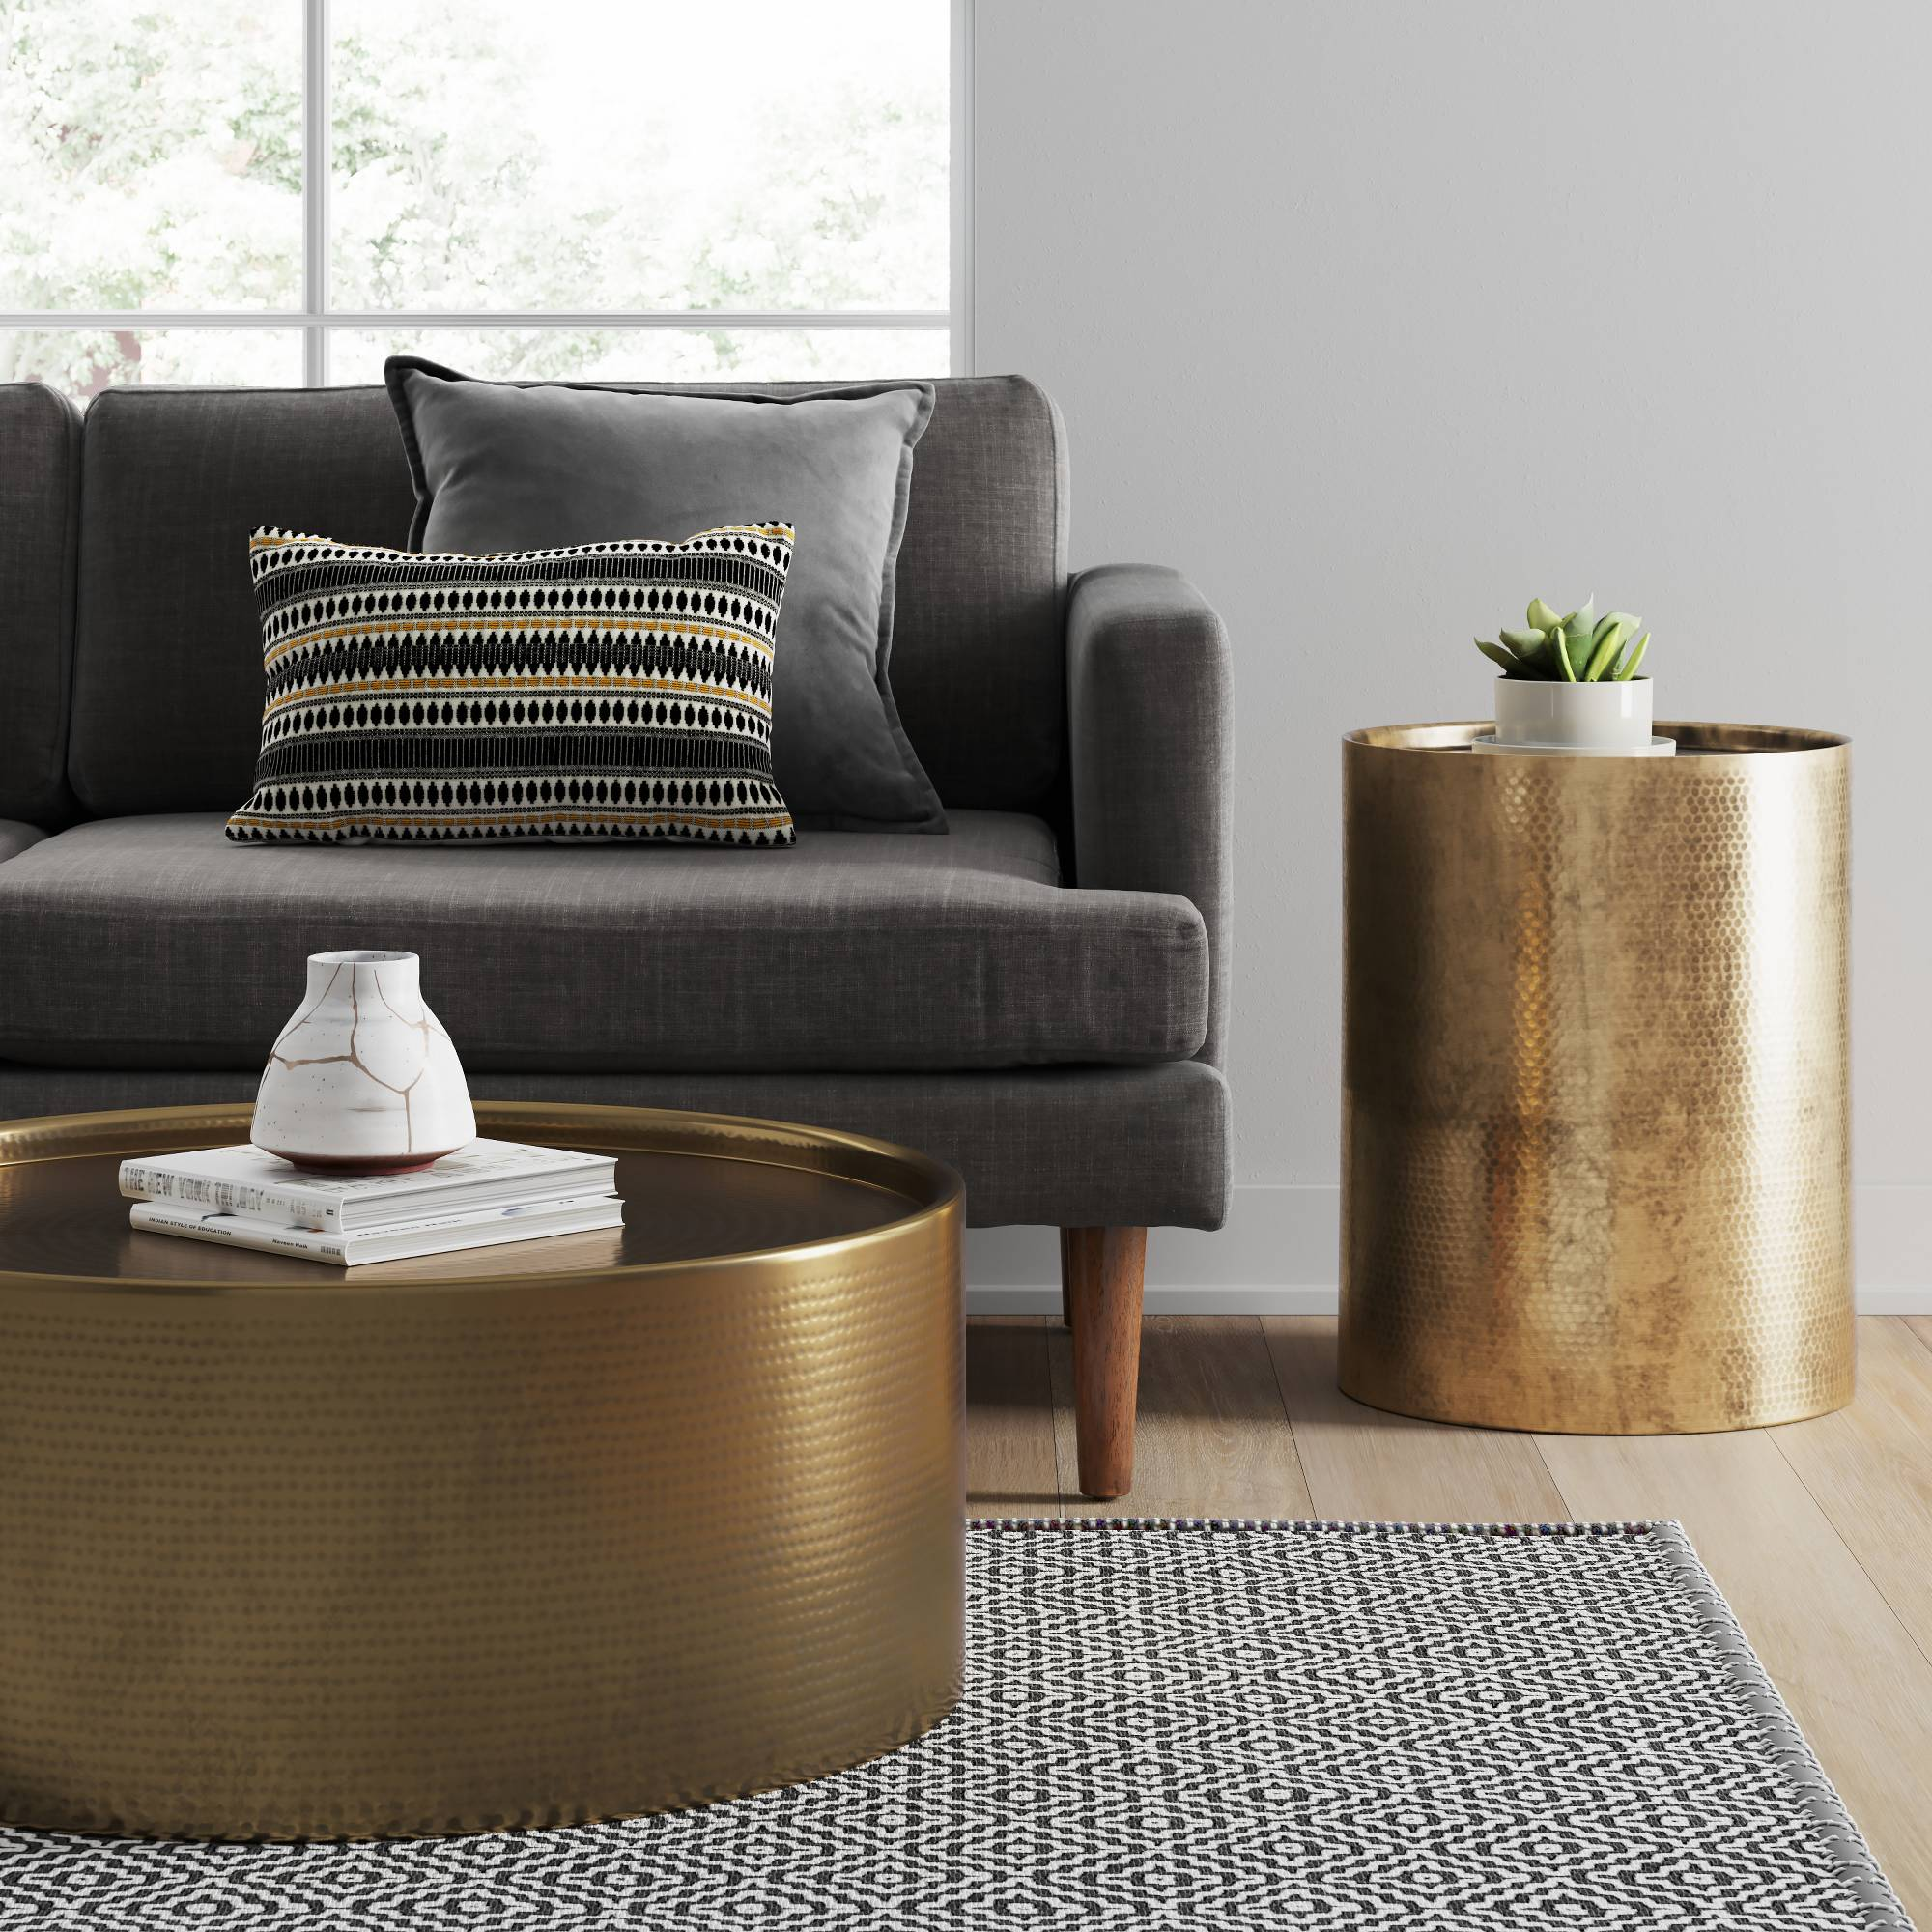 Target Home Furnishings: Buy These Items From Target's New Home Decor Line To Make